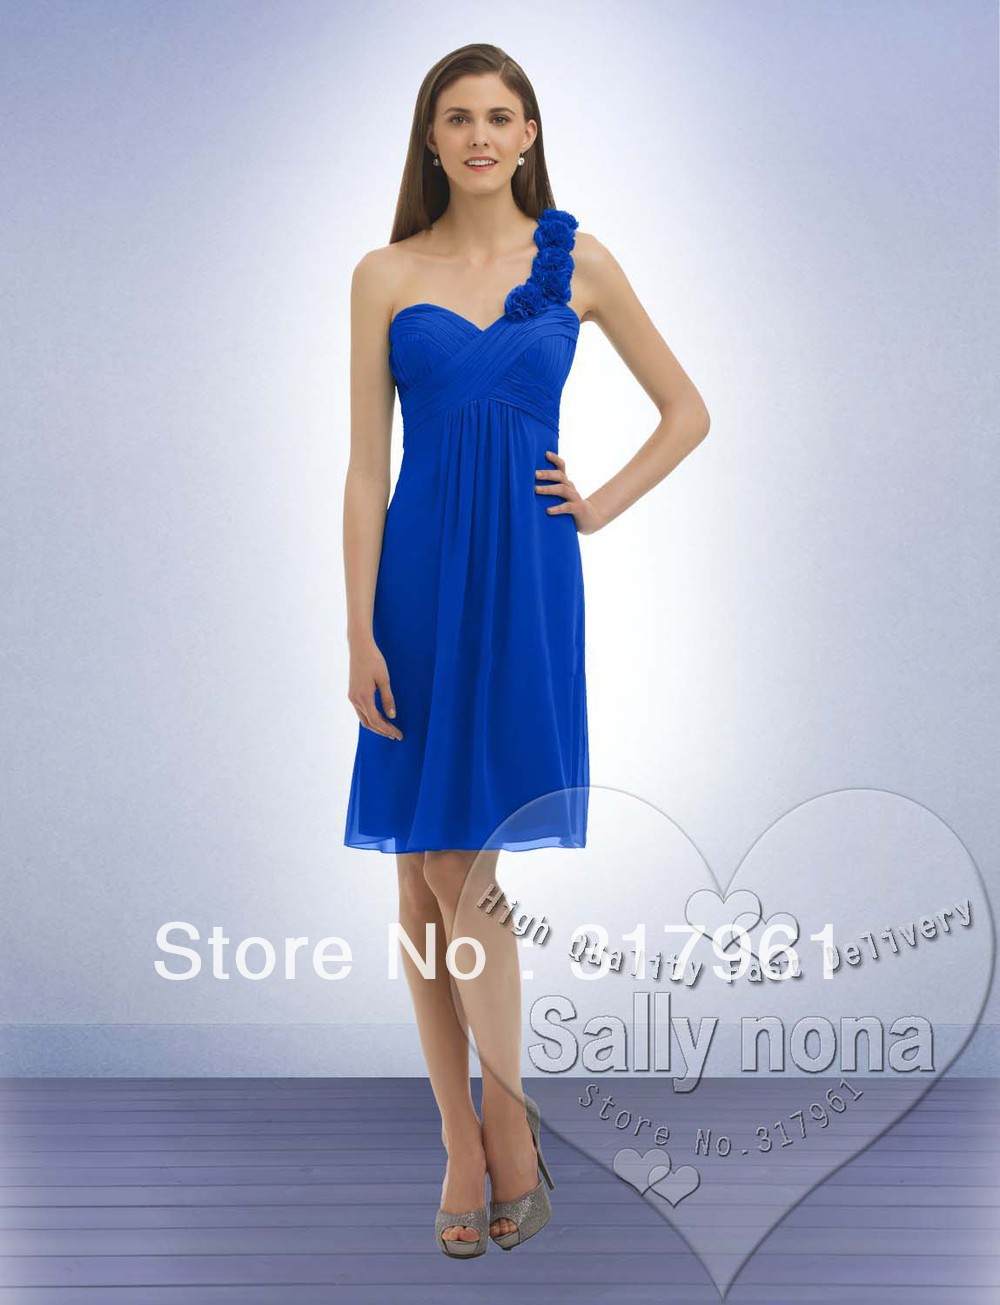 Discount Army Unhappy Jacinth Turquoise Redden Untrained A particular    One Shoulder Royal Blue Bridesmaid Dresses